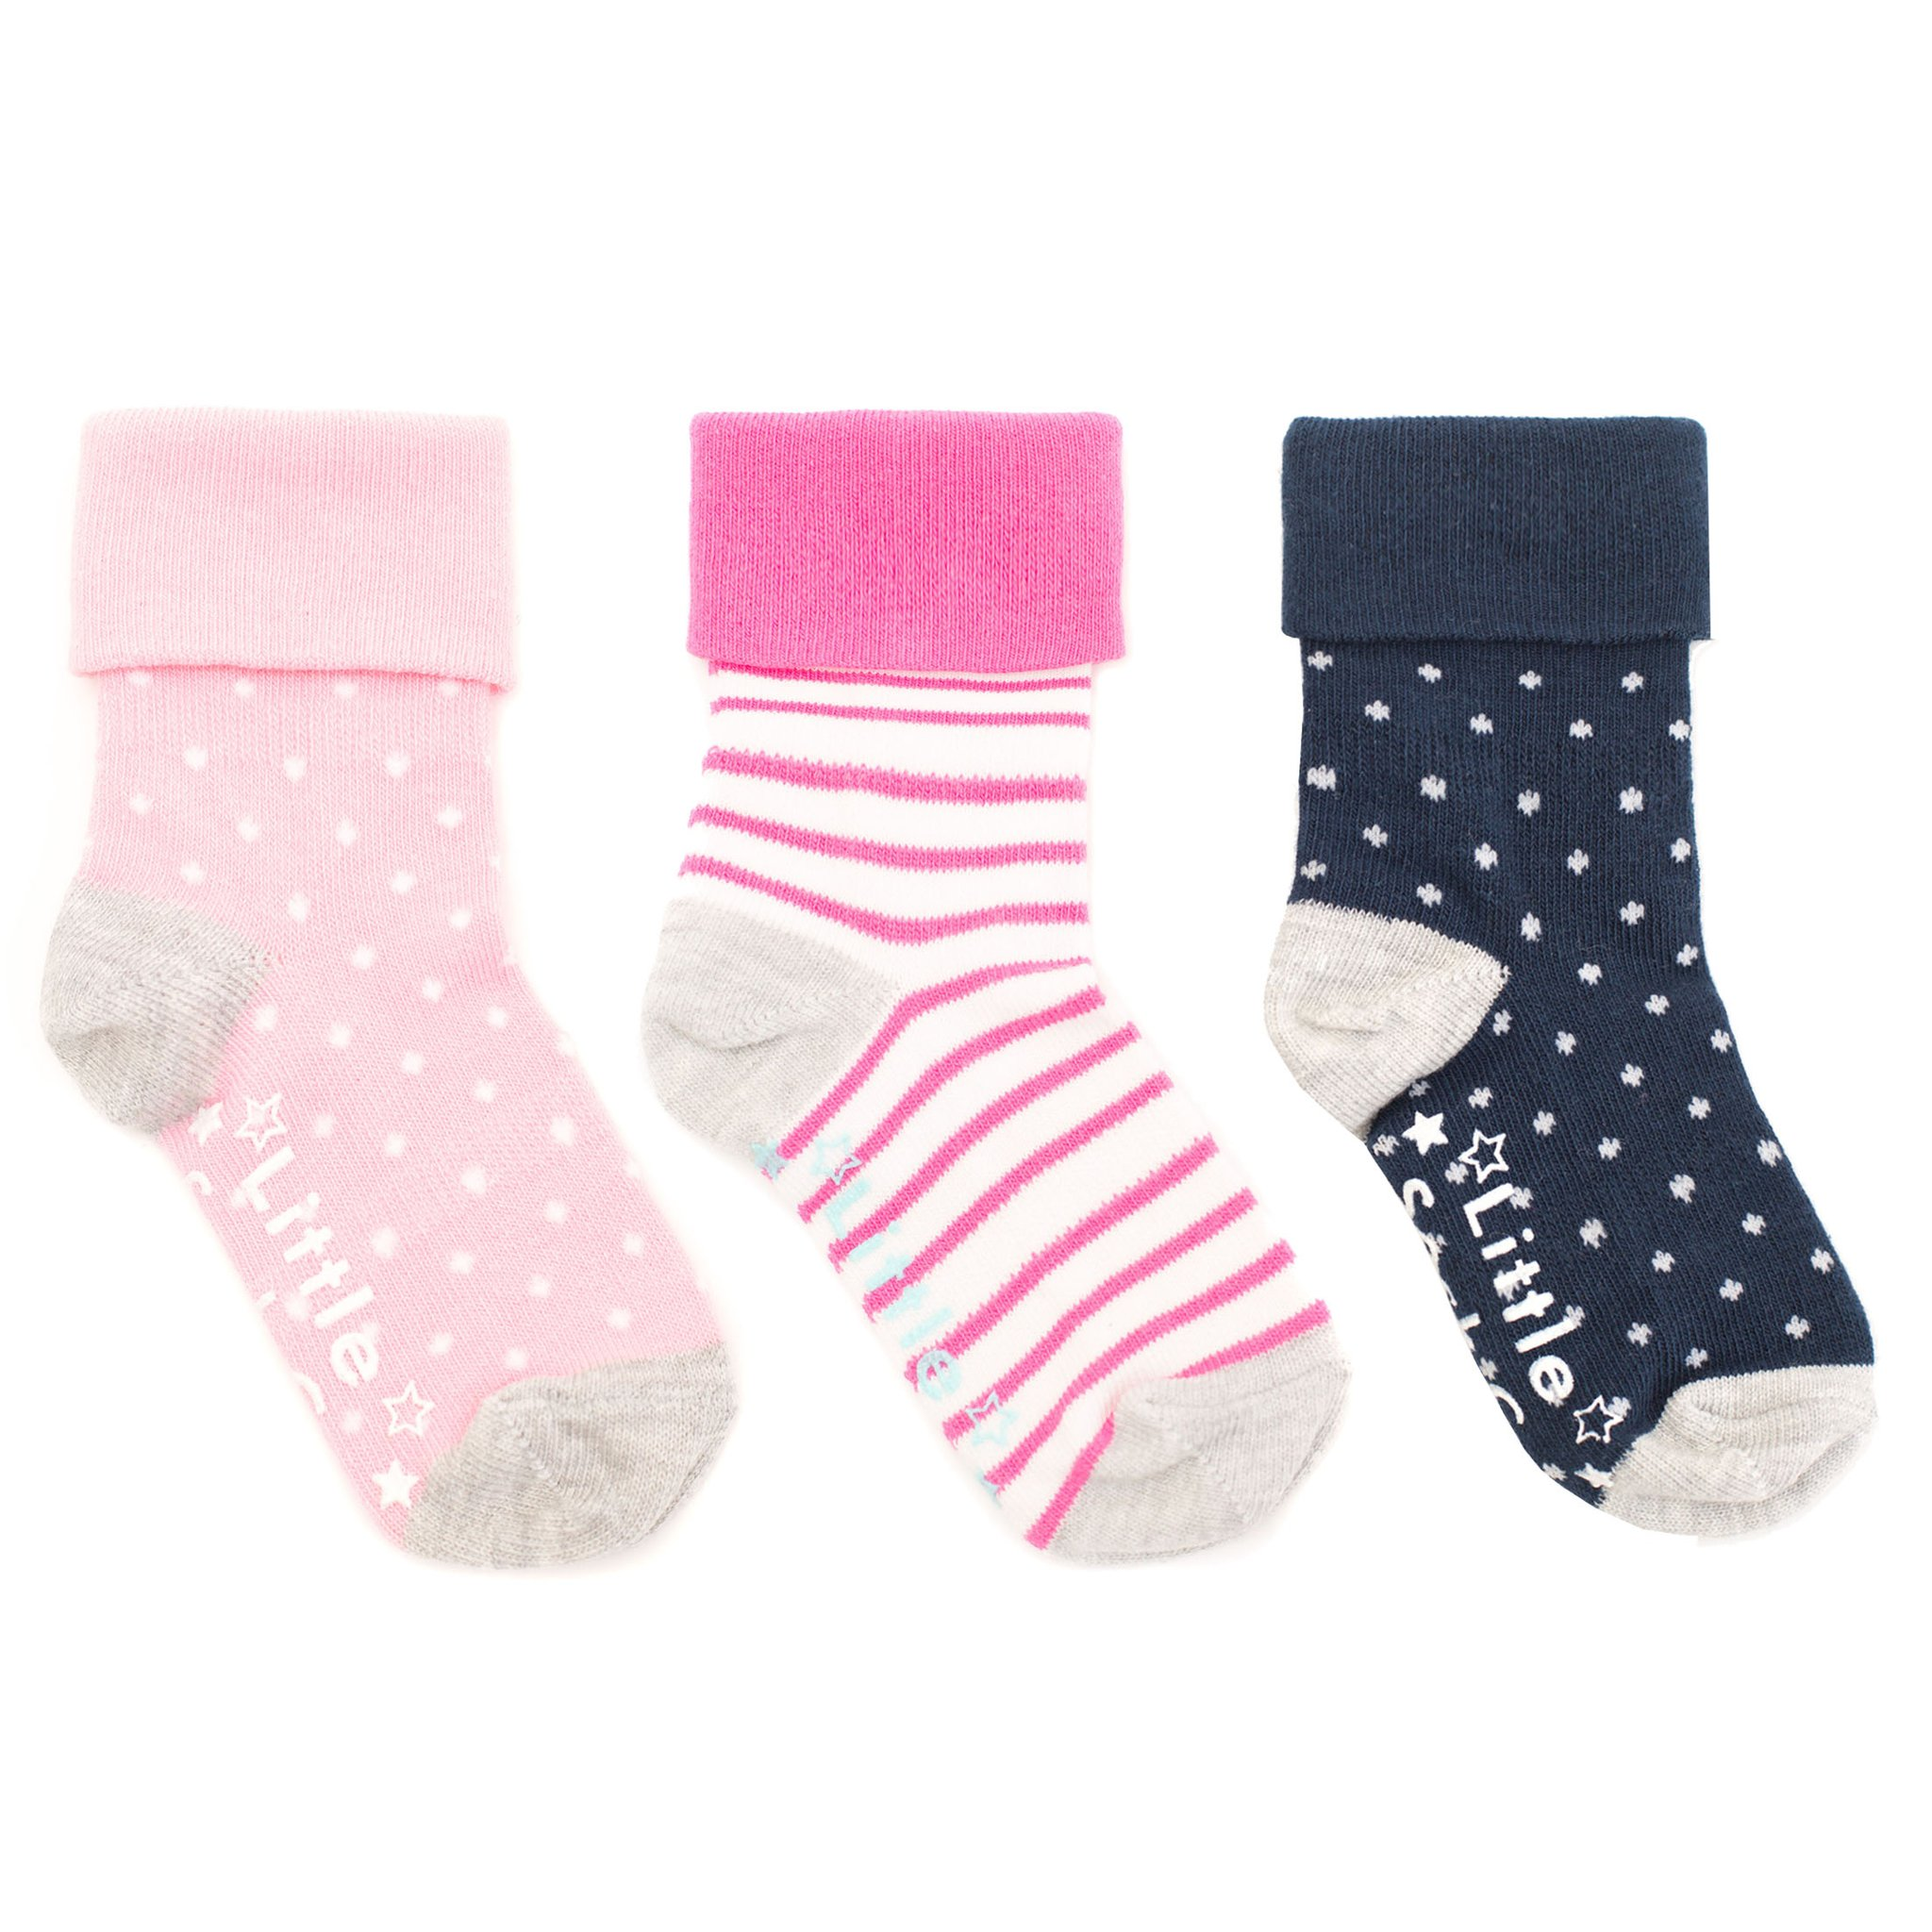 NON - SLIP STAY ON SOCKS - (3 PAIR) POP PINK AND WHITE WIDE STRIPE, CANDY PINK WITH A WHITE PIN DOT AND NAVY WITH A WHITE PIN DOT